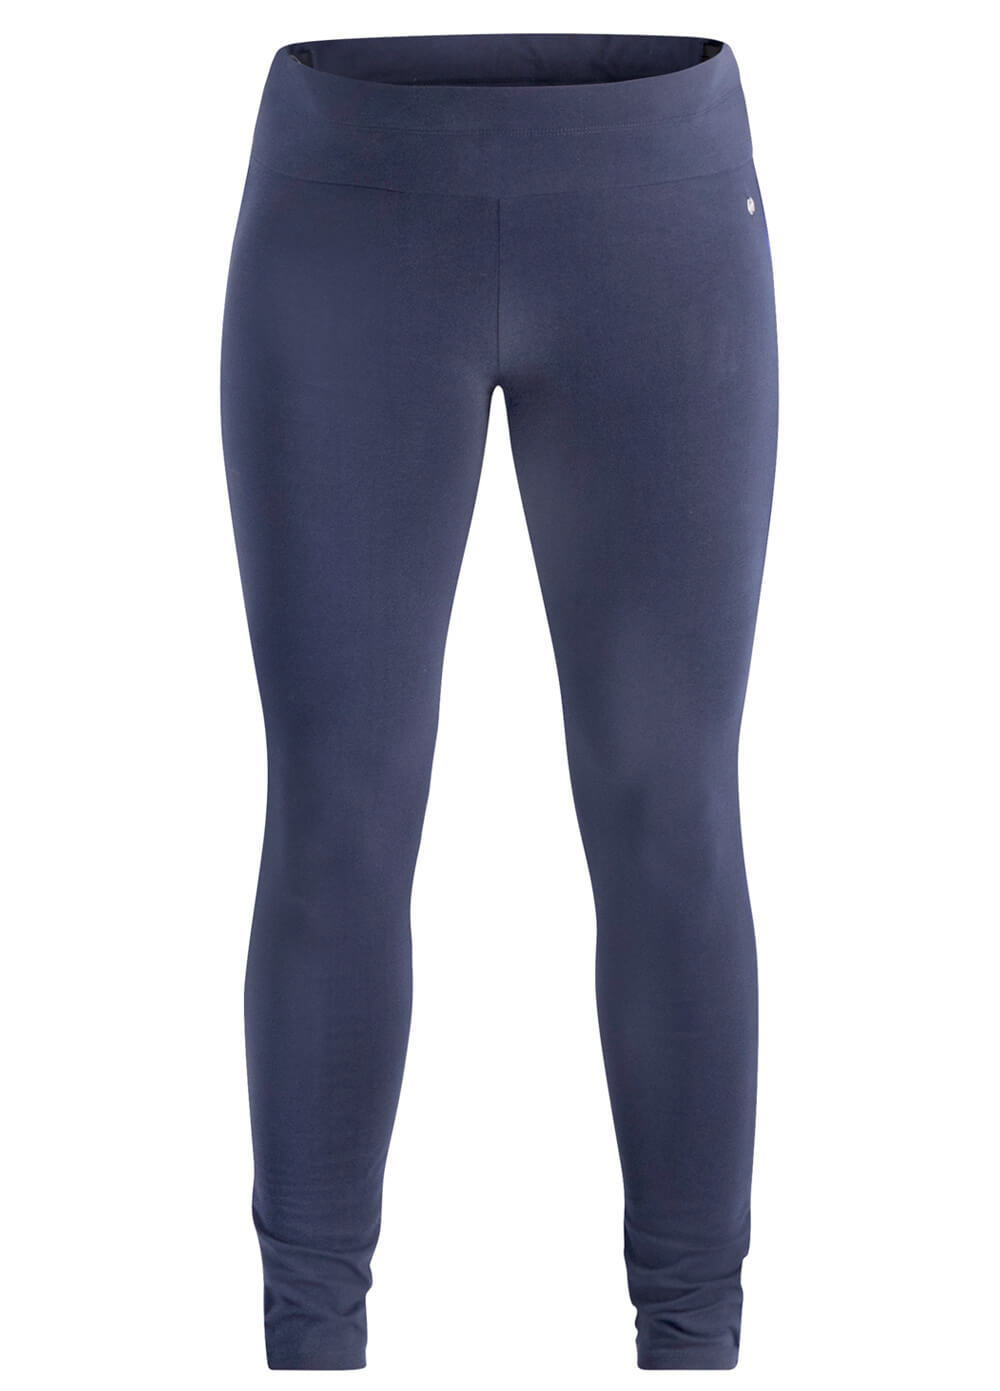 Sporty Piped Maternity Leggings in Night Blue by Esprit